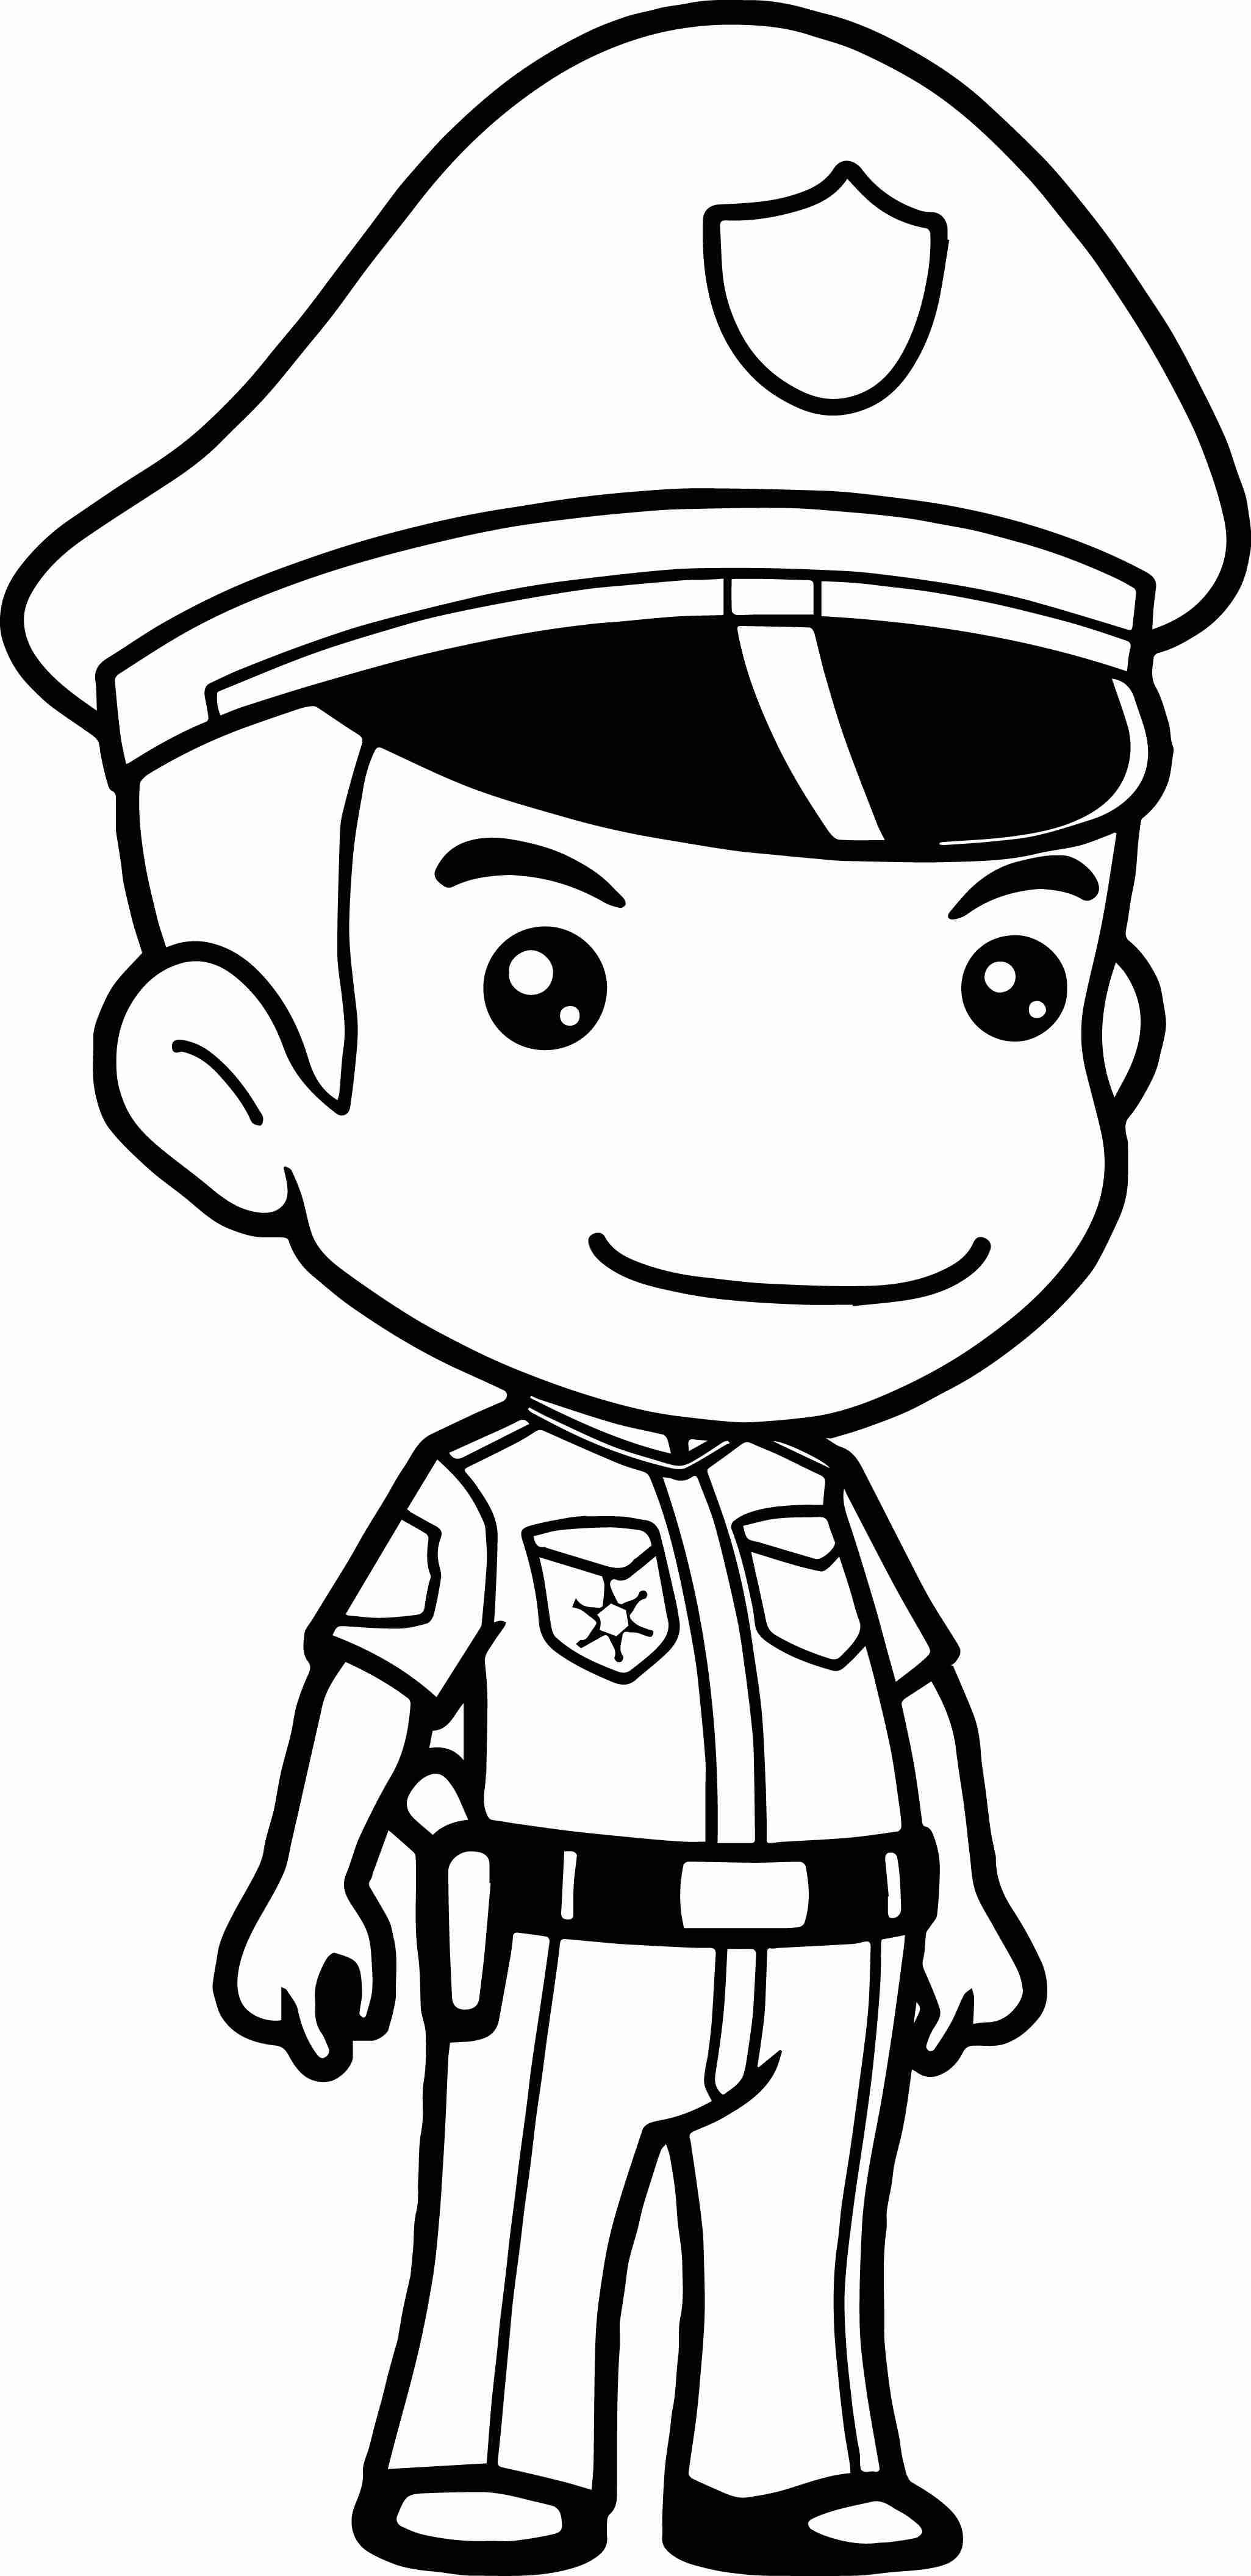 how to draw a police officer police officer drawing free download on clipartmag how police officer draw a to